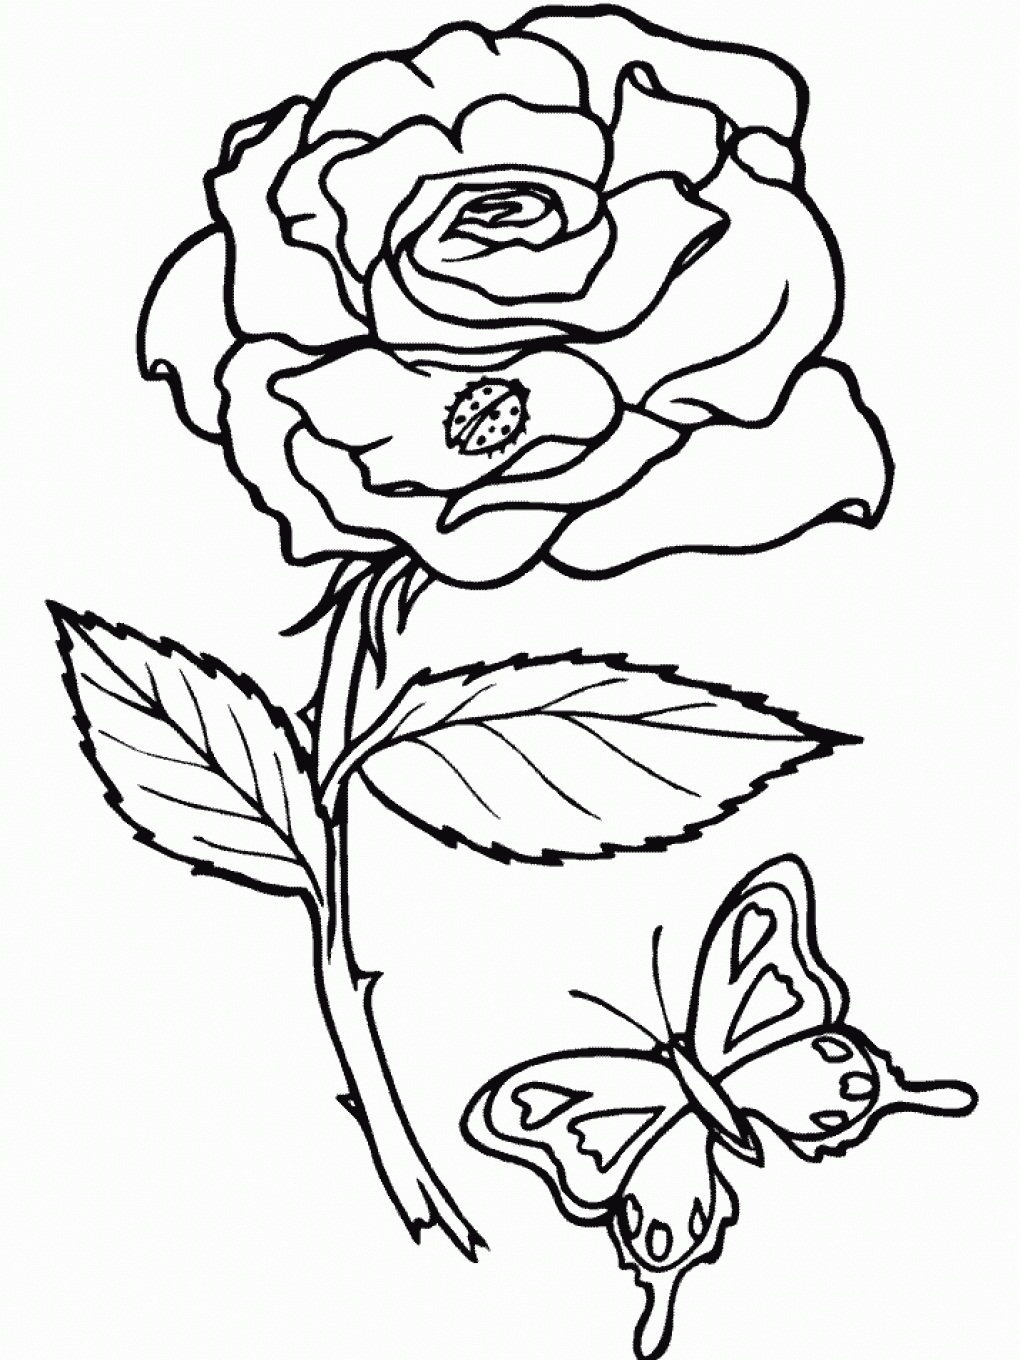 Free Printable Roses Coloring Pages For Kids